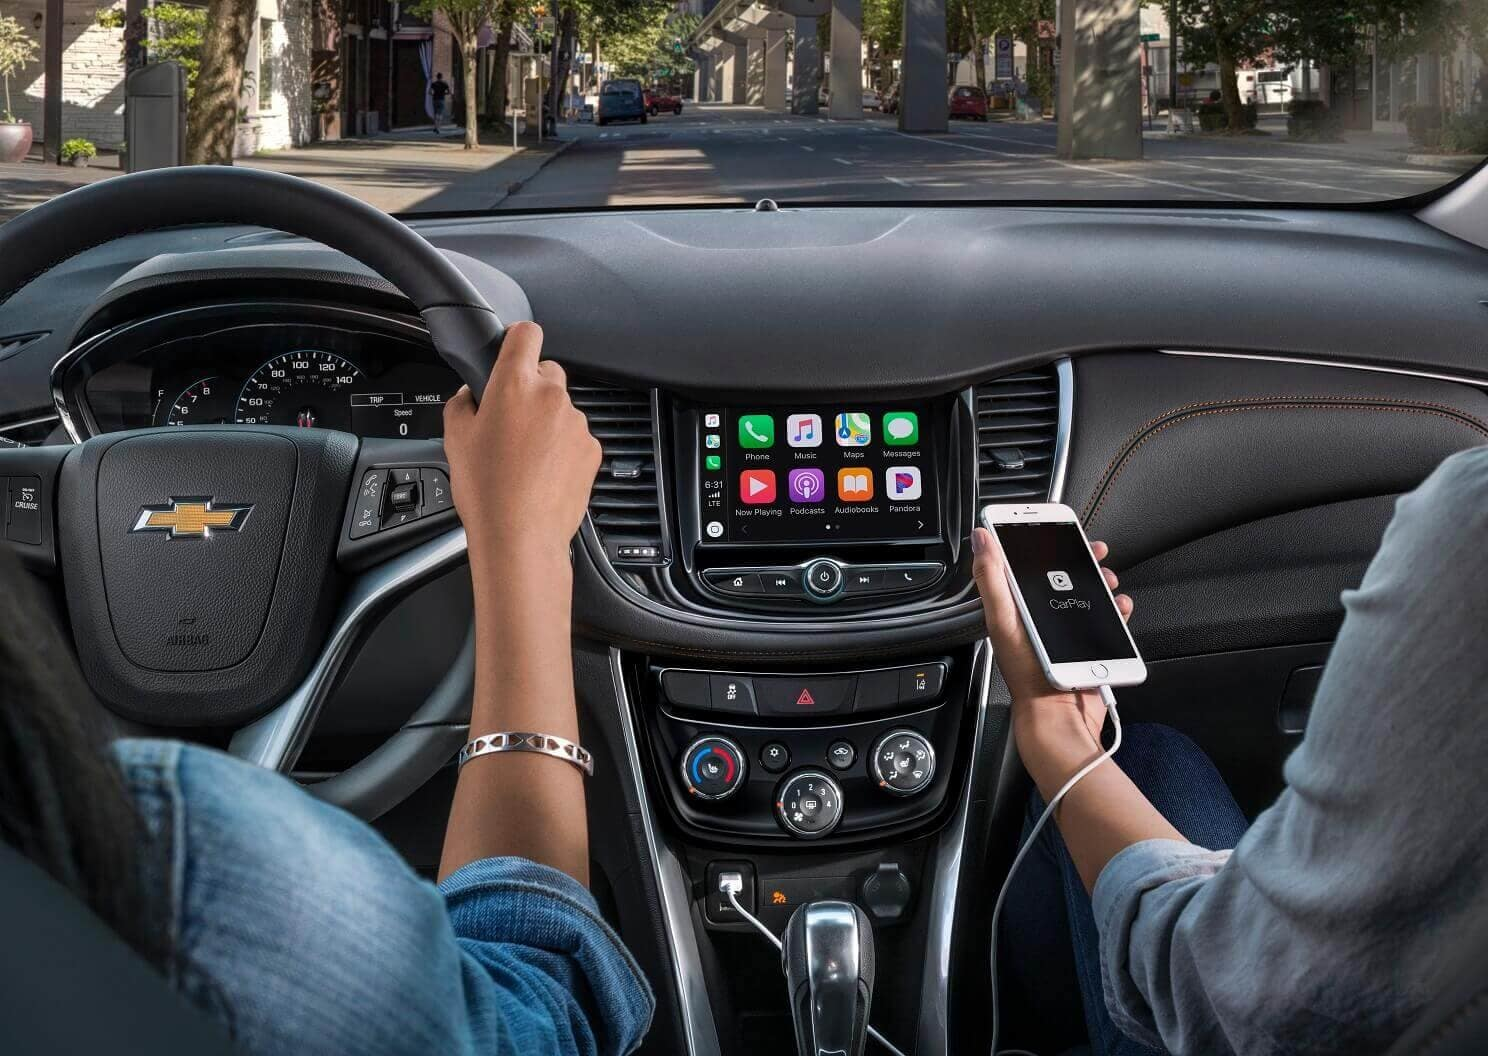 2020 Chevrolet Trax Interior with Apple CarPlay™ Technology